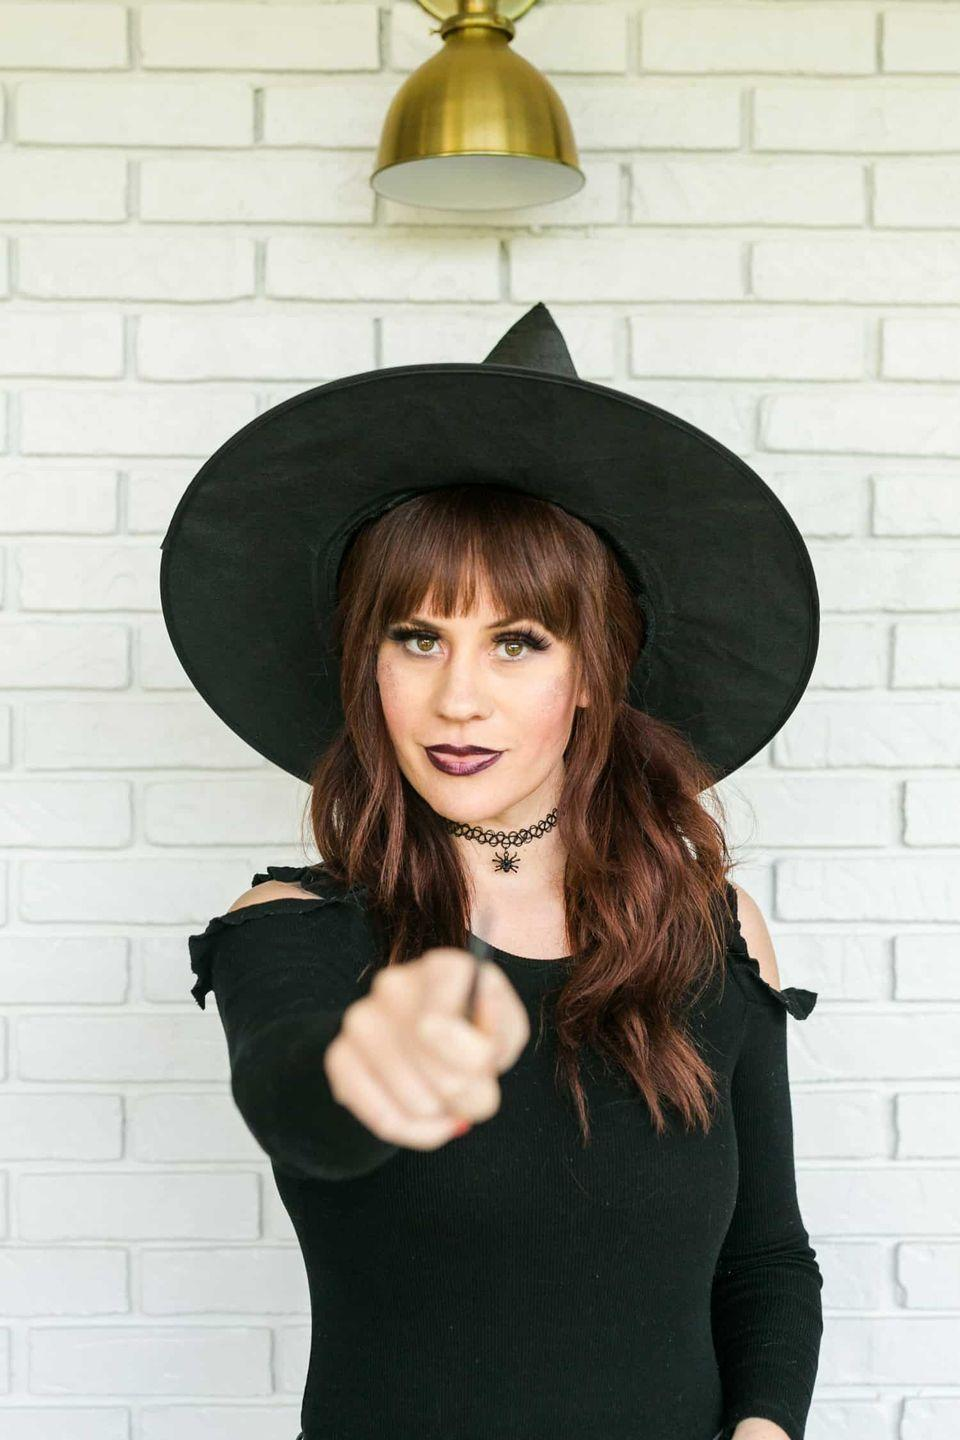 """<p>Embrace your most nostalgic inner goth with this glamorous '90s-inspired witch look.</p><p><strong>Get the tutorial at <a href=""""https://abeautifulmess.com/2018/10/5-easy-clean-beauty-halloween-looks.html"""" rel=""""nofollow noopener"""" target=""""_blank"""" data-ylk=""""slk:A Beautiful Mess"""" class=""""link rapid-noclick-resp"""">A Beautiful Mess</a>.</strong></p><p><strong><a class=""""link rapid-noclick-resp"""" href=""""https://www.amazon.com/NYX-PROFESSIONAL-MAKEUP-Lipstick-Digger/dp/B01EZ8M8TS/?tag=syn-yahoo-20&ascsubtag=%5Bartid%7C10050.g.28304812%5Bsrc%7Cyahoo-us"""" rel=""""nofollow noopener"""" target=""""_blank"""" data-ylk=""""slk:SHOP DARK LIPSTICKS"""">SHOP DARK LIPSTICKS</a><br></strong></p>"""